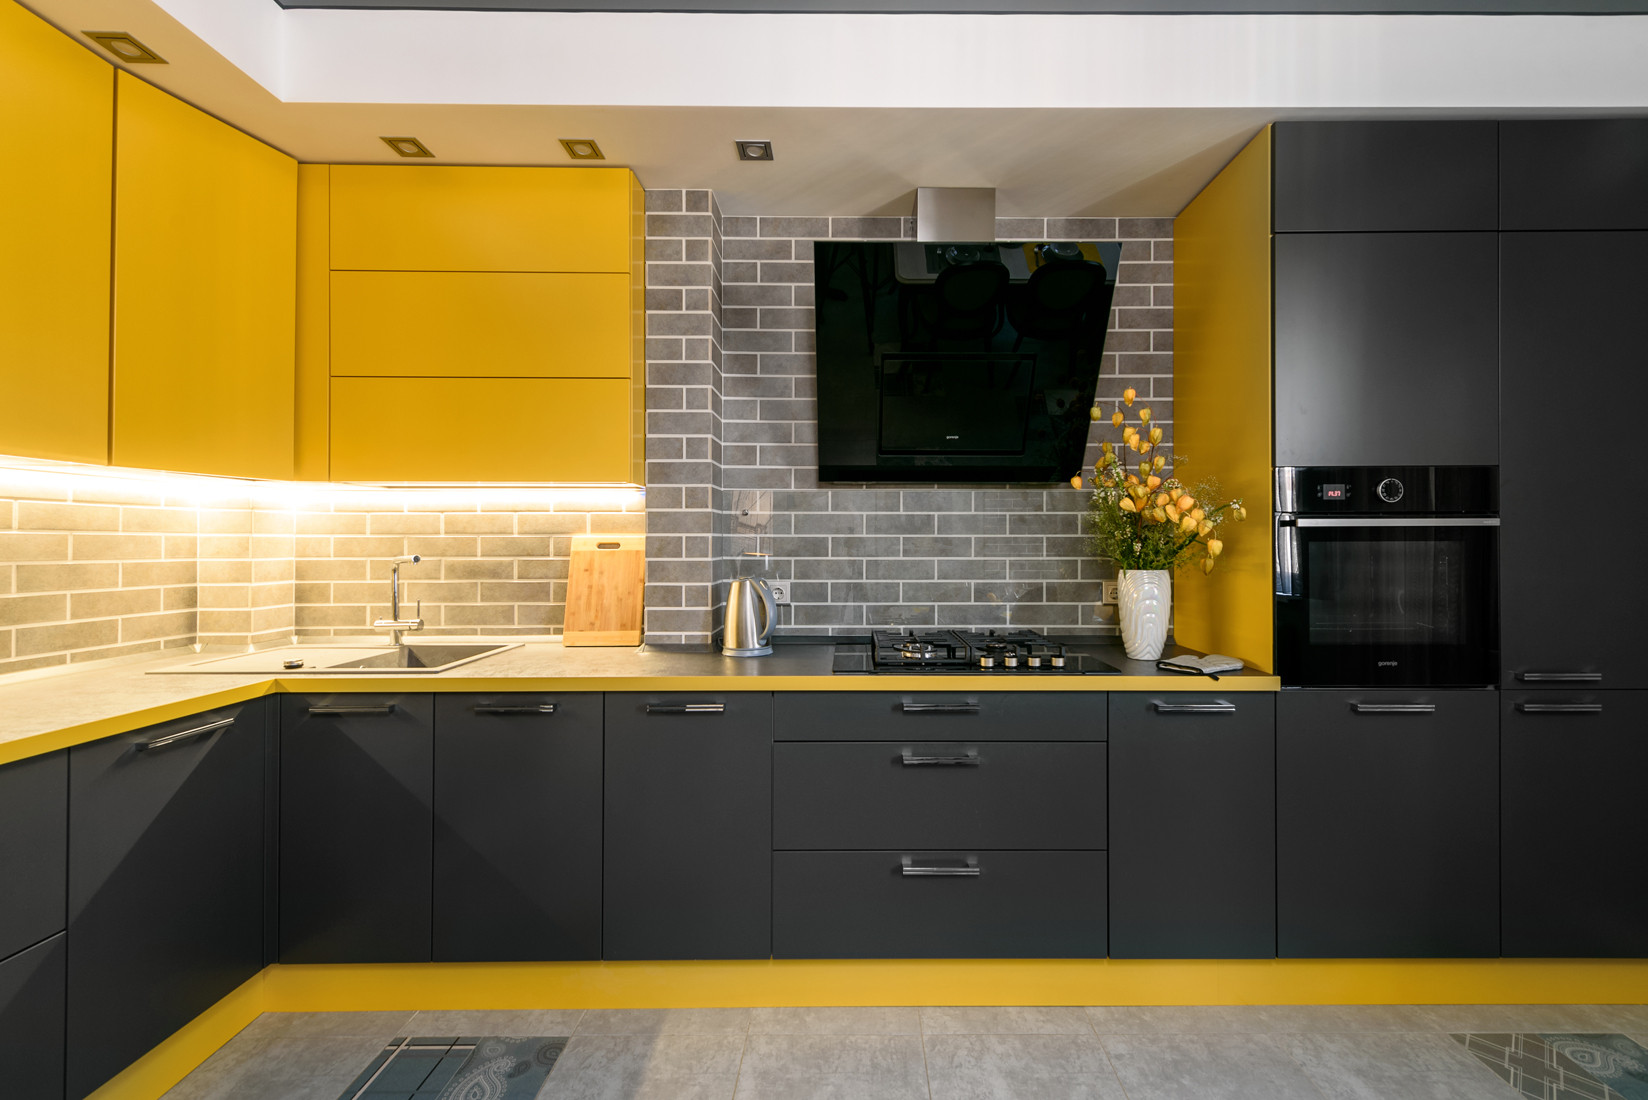 75 Beautiful Yellow Kitchen With Black Appliances Pictures Ideas January 2021 Houzz